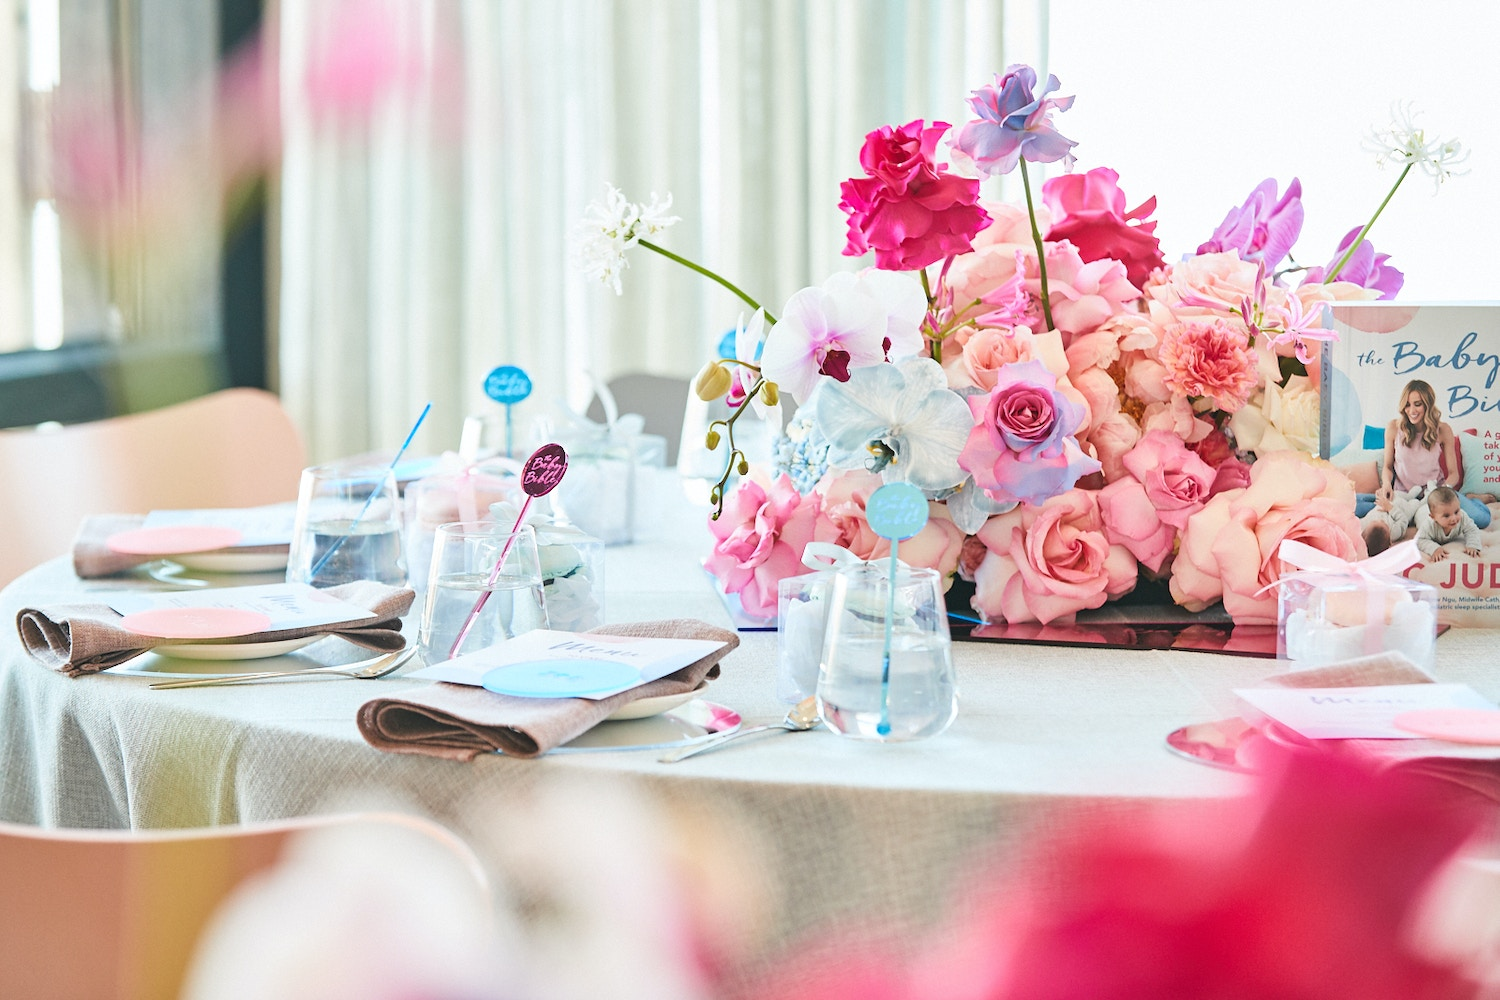 WHY ARE WEDDING FLOWERS SO EXPENSIVE?